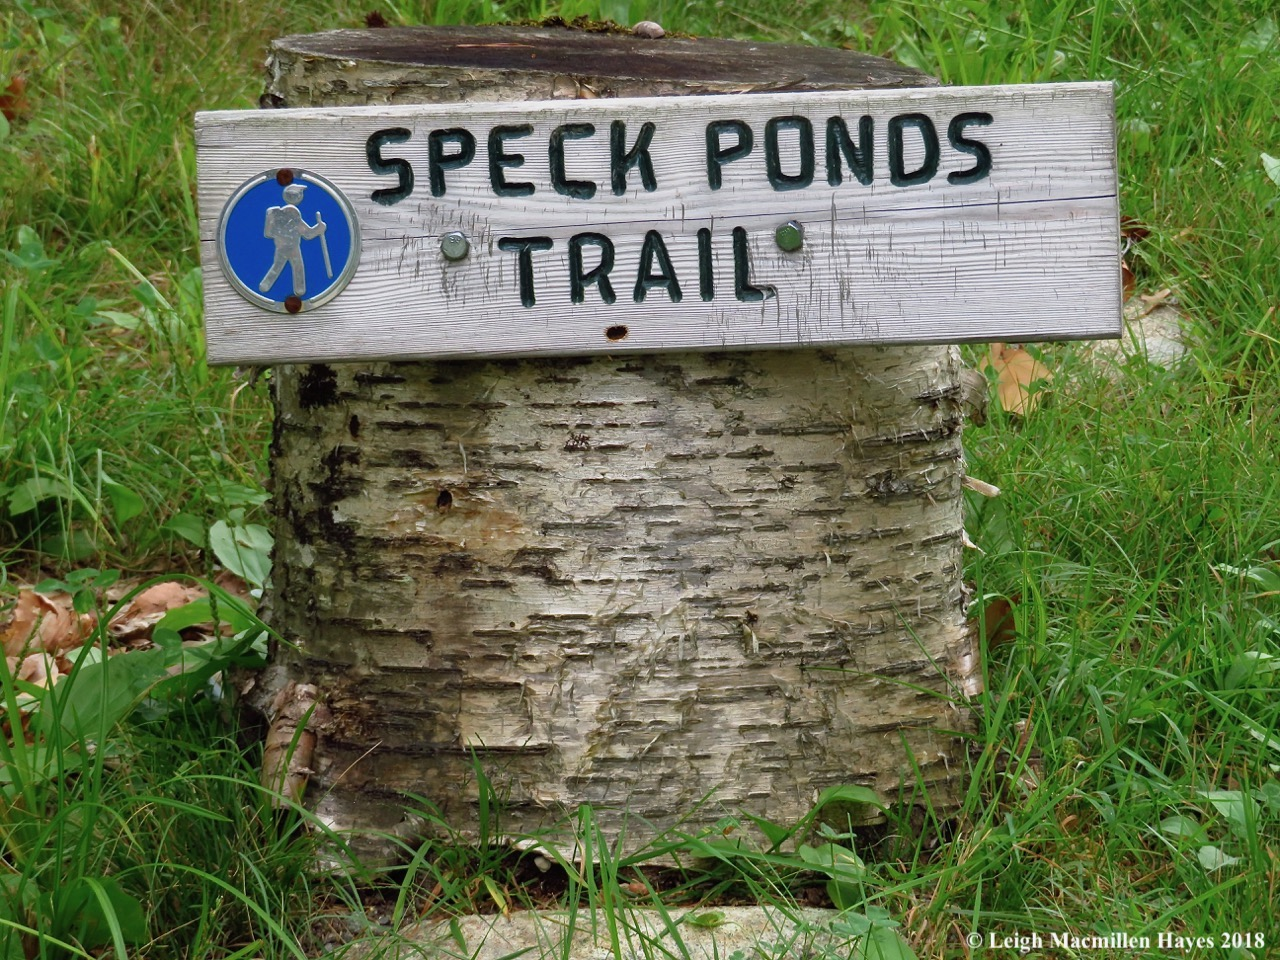 10-Speck Ponds Trail